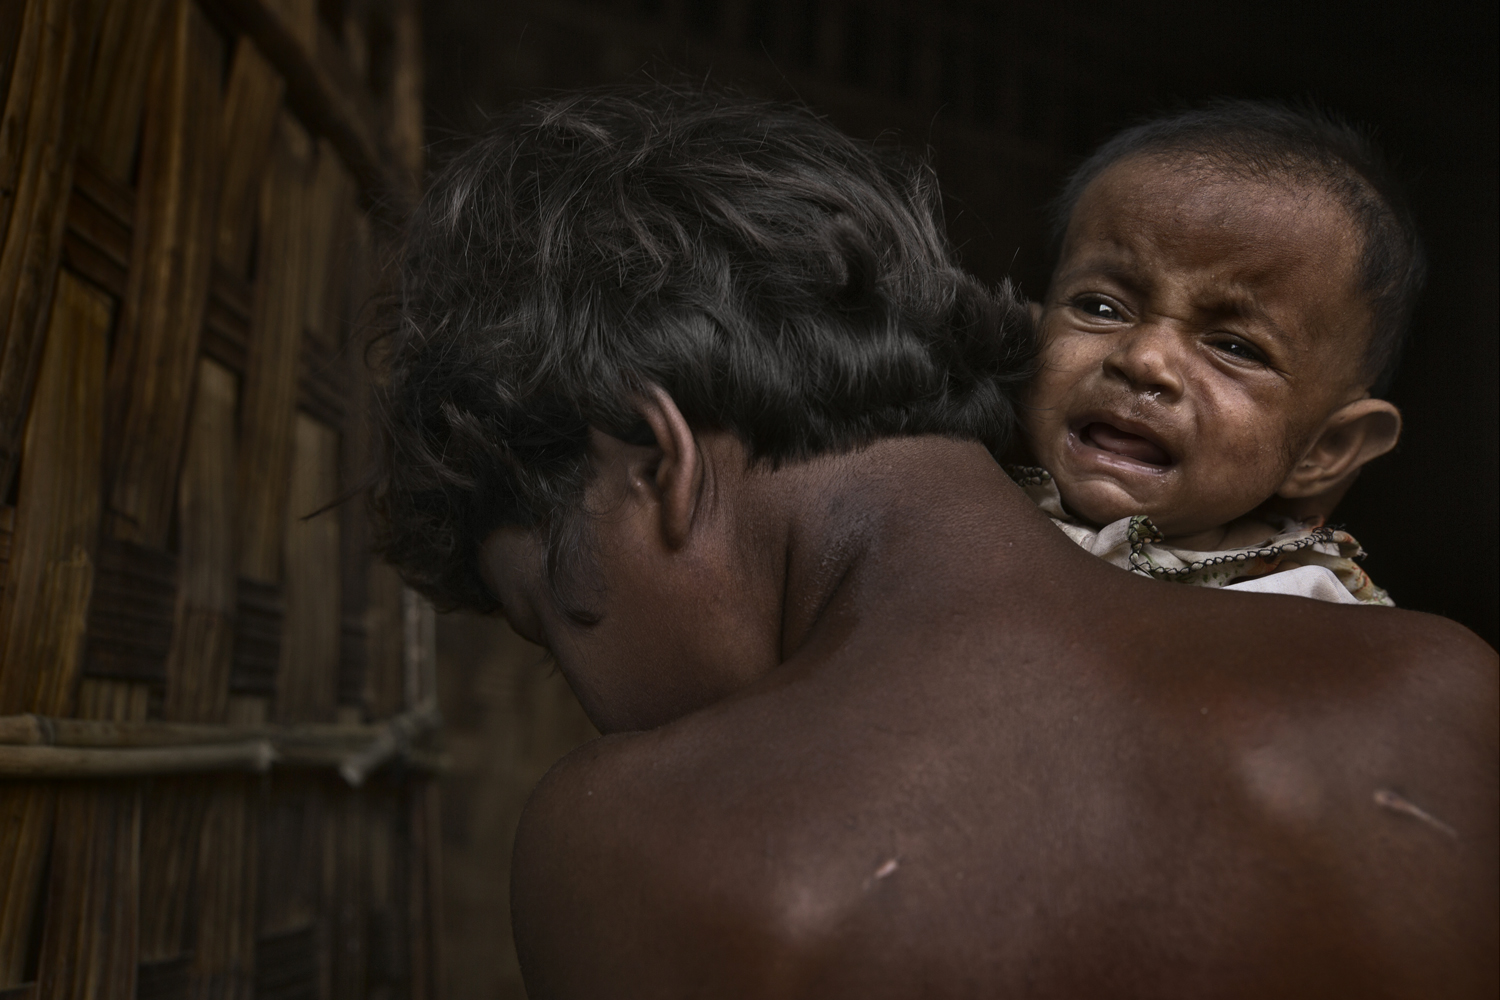 A child suffering from malnutrition in one of the camps is held by its mother.